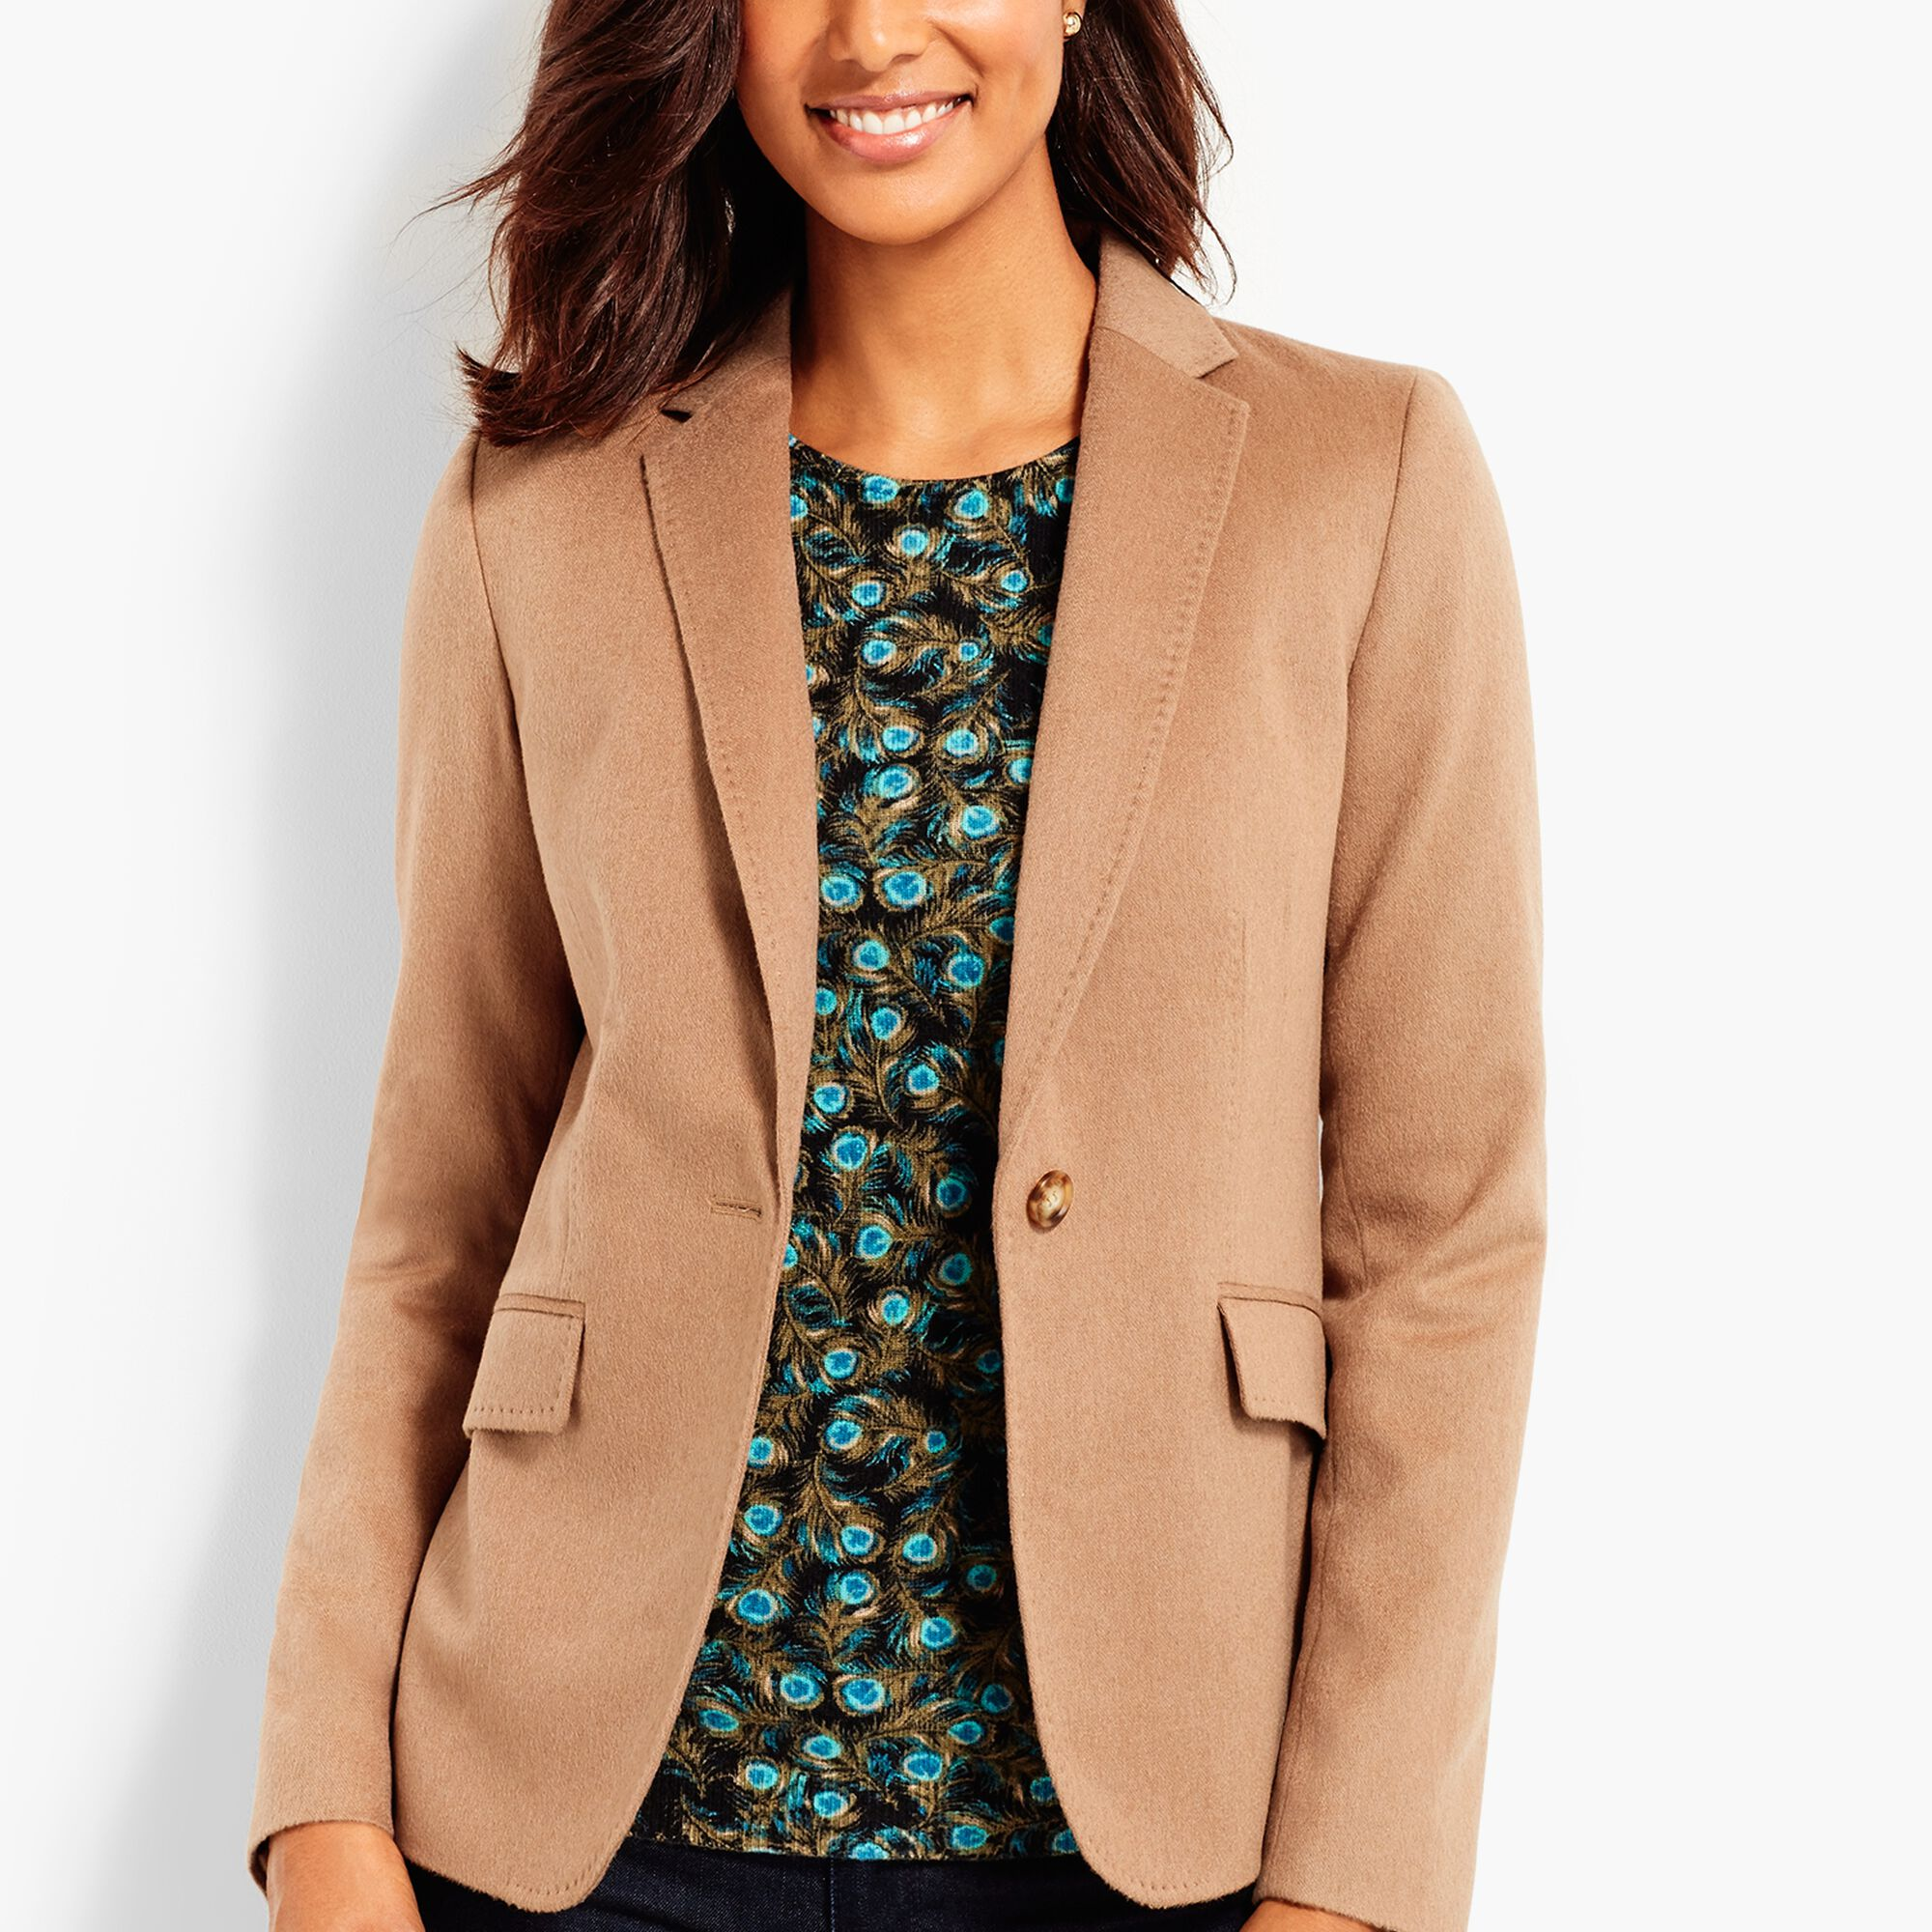 589be15b0ee84 Images. Camel Hair Blazer